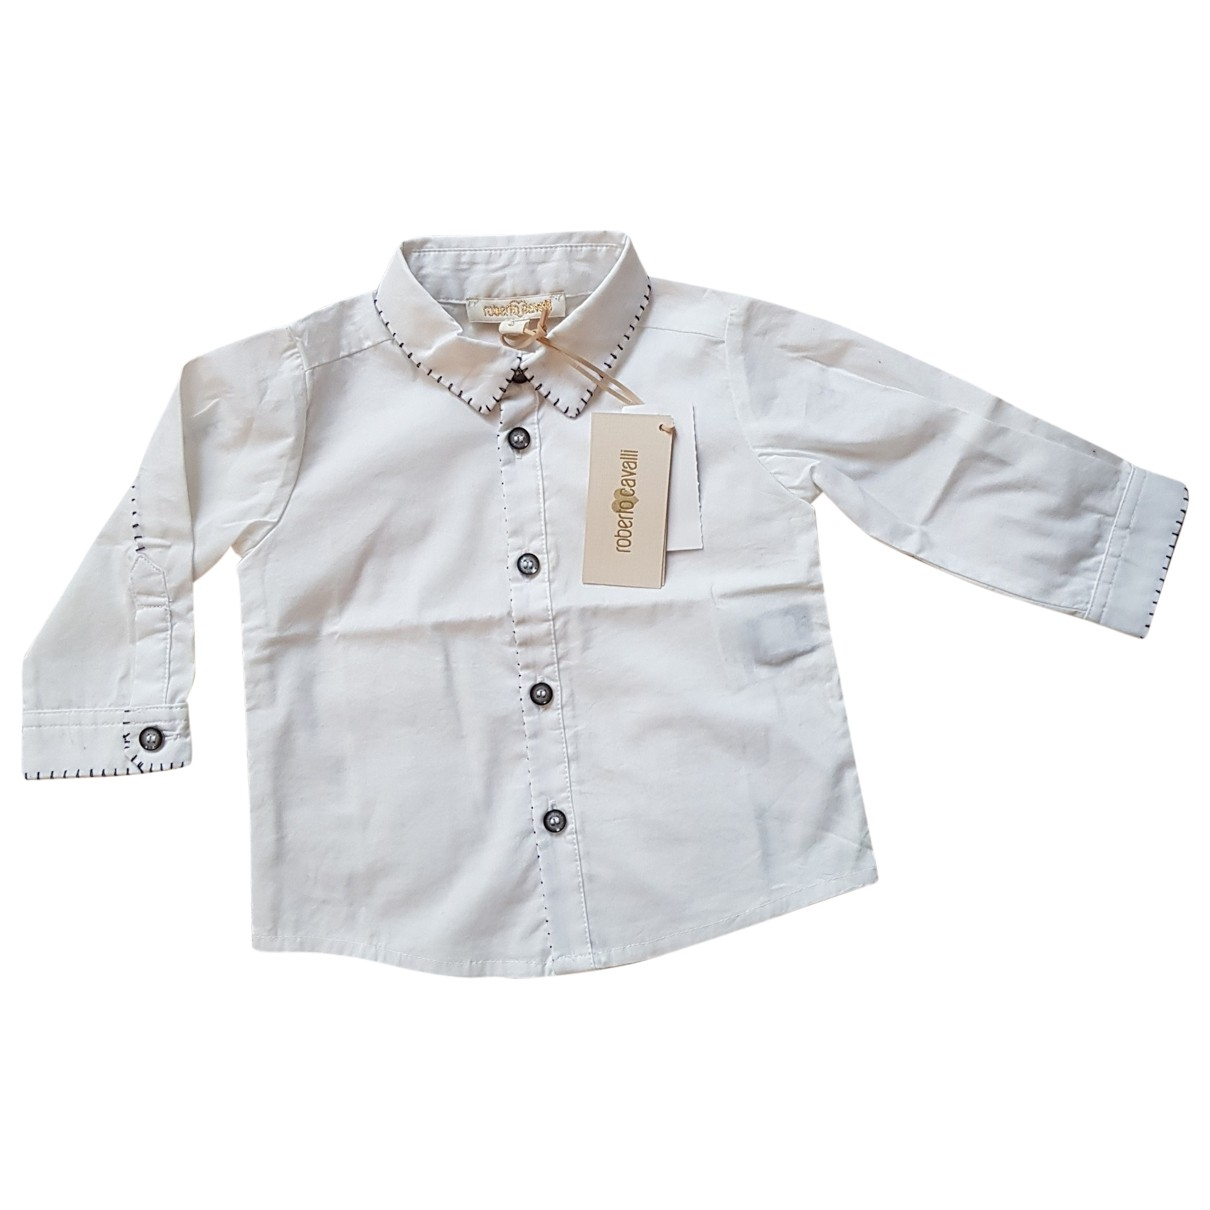 Roberto Cavalli \N White Cotton Outfits for Kids 3 months - up to 60cm FR